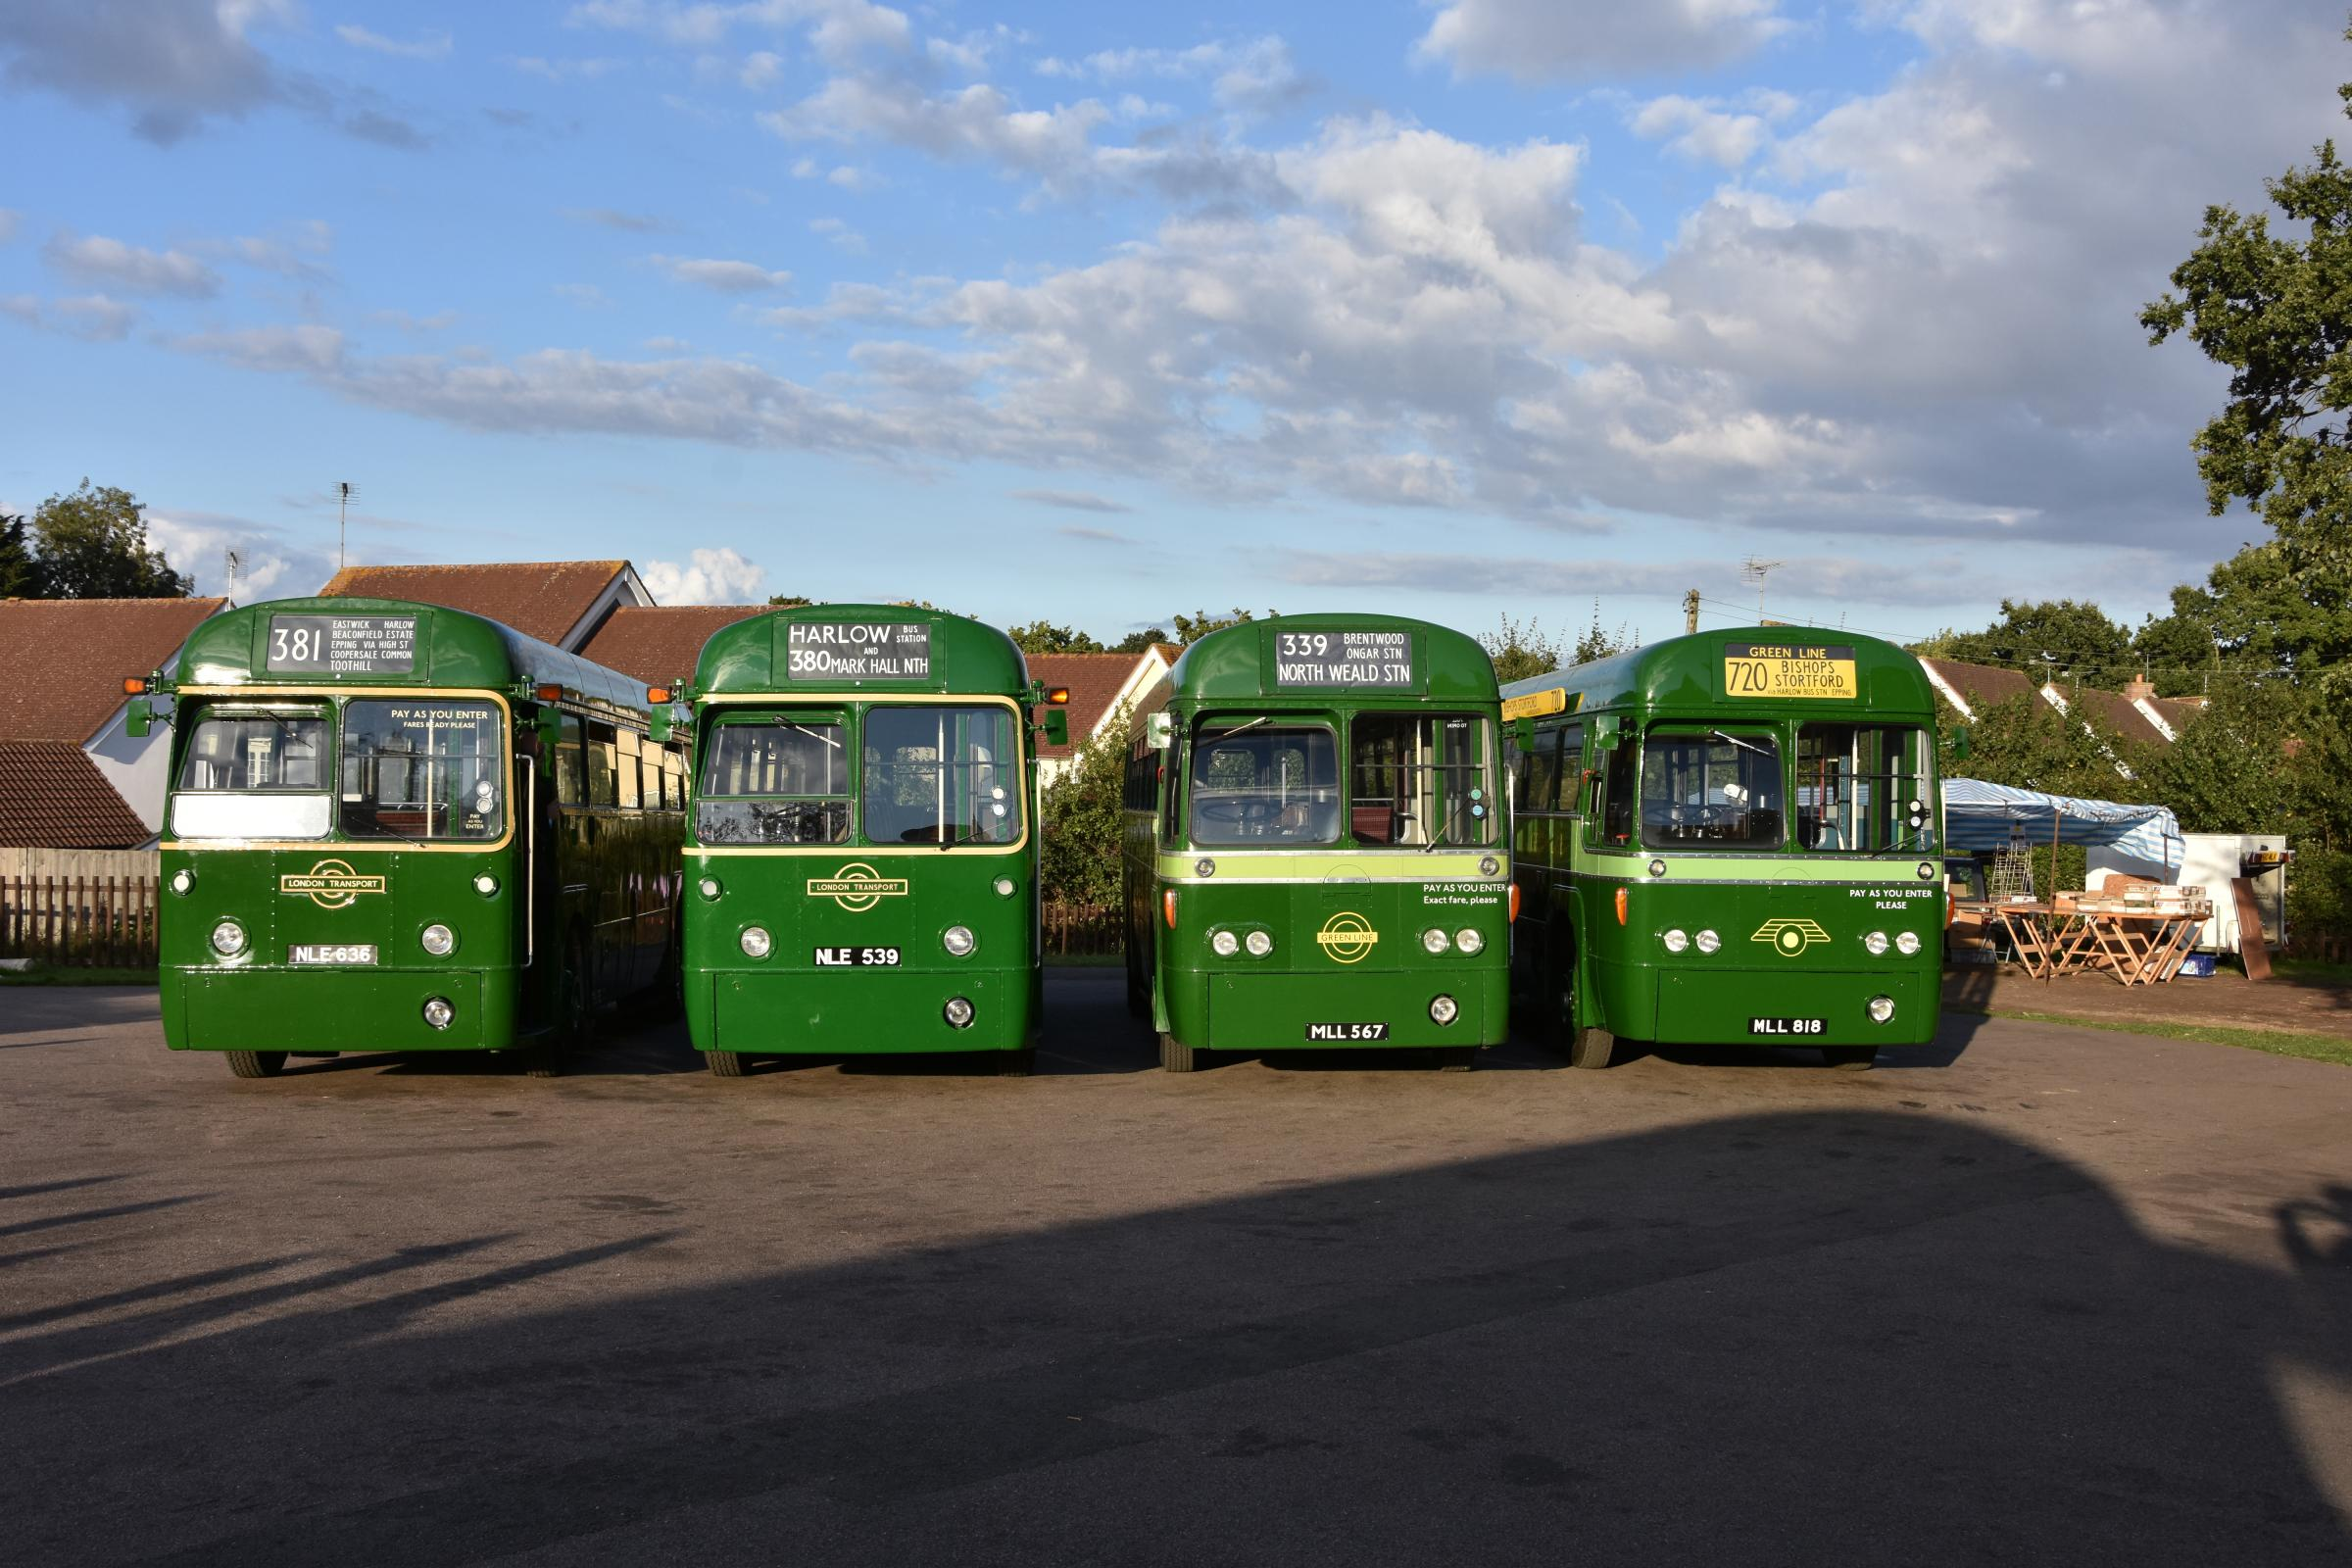 Carry on buses - classic London models to parade across Epping Forest this weekend